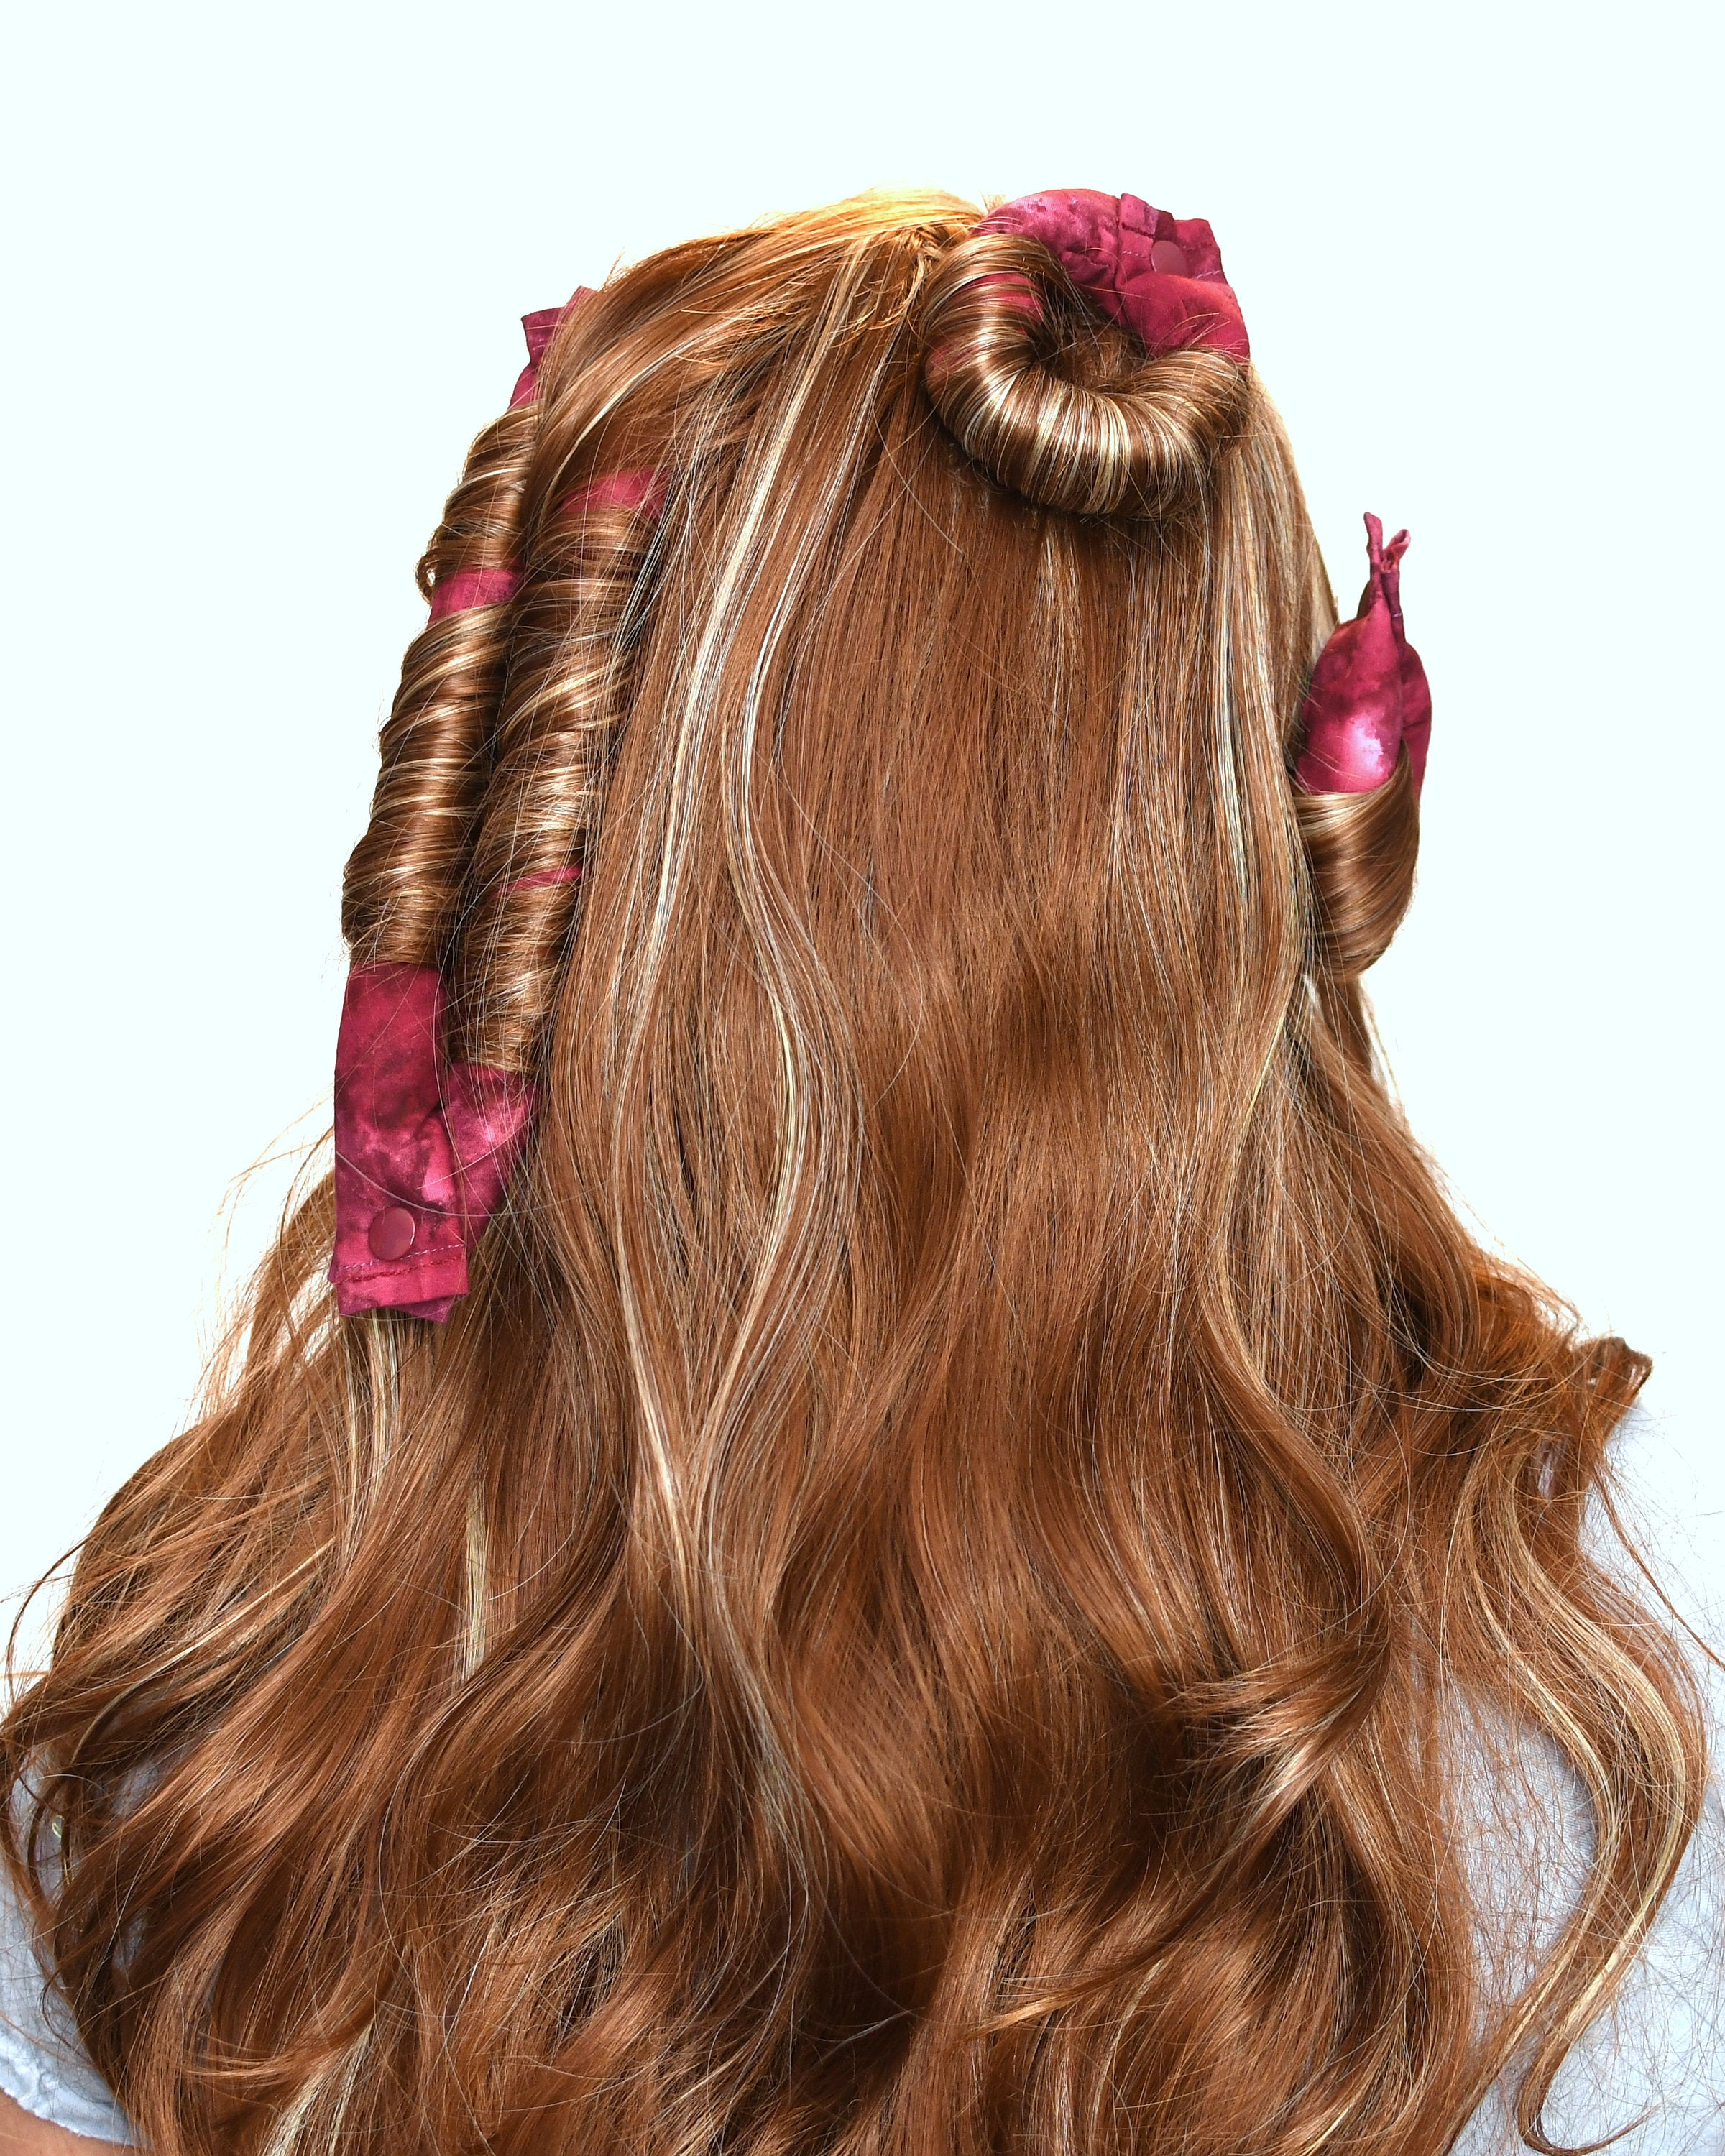 Burgundy Batik Cotton Fabric Hair Rollers/ Soft Fabric Rollers/Hair Curlers/Hair Accessories - My Easy Curls